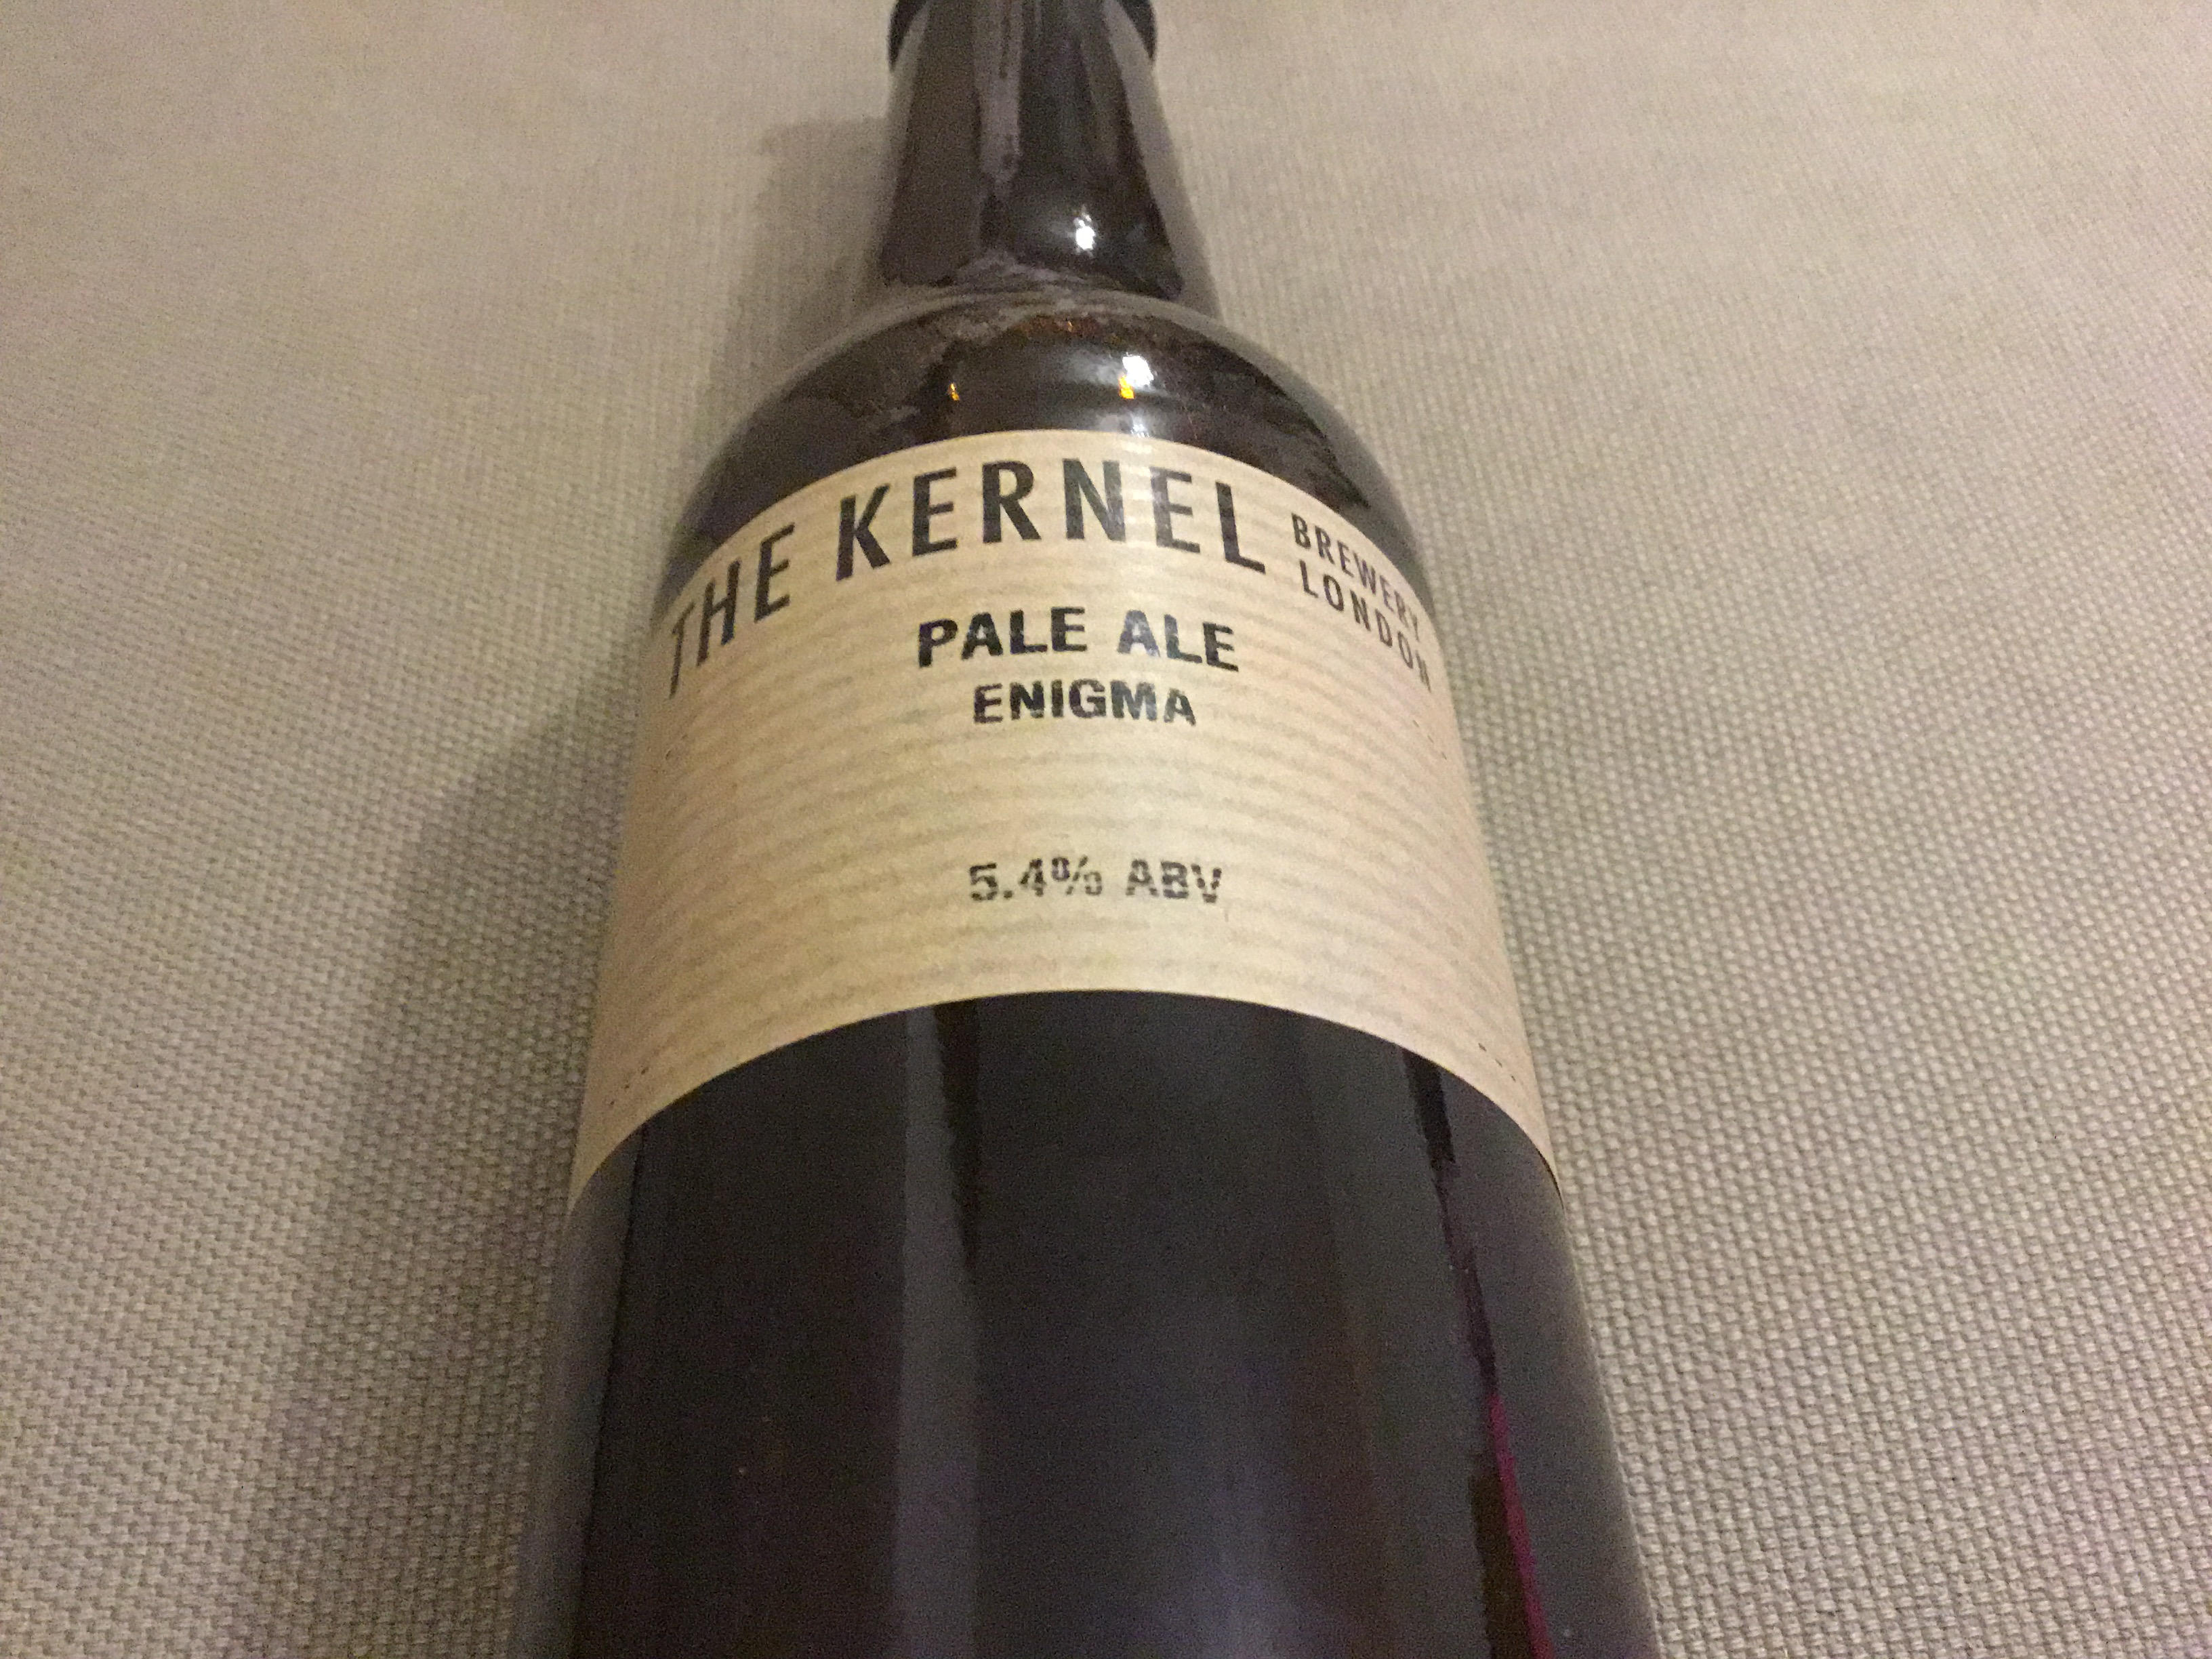 Pale Ale Enigma 5.4% 330ml The Kernel Brewery London